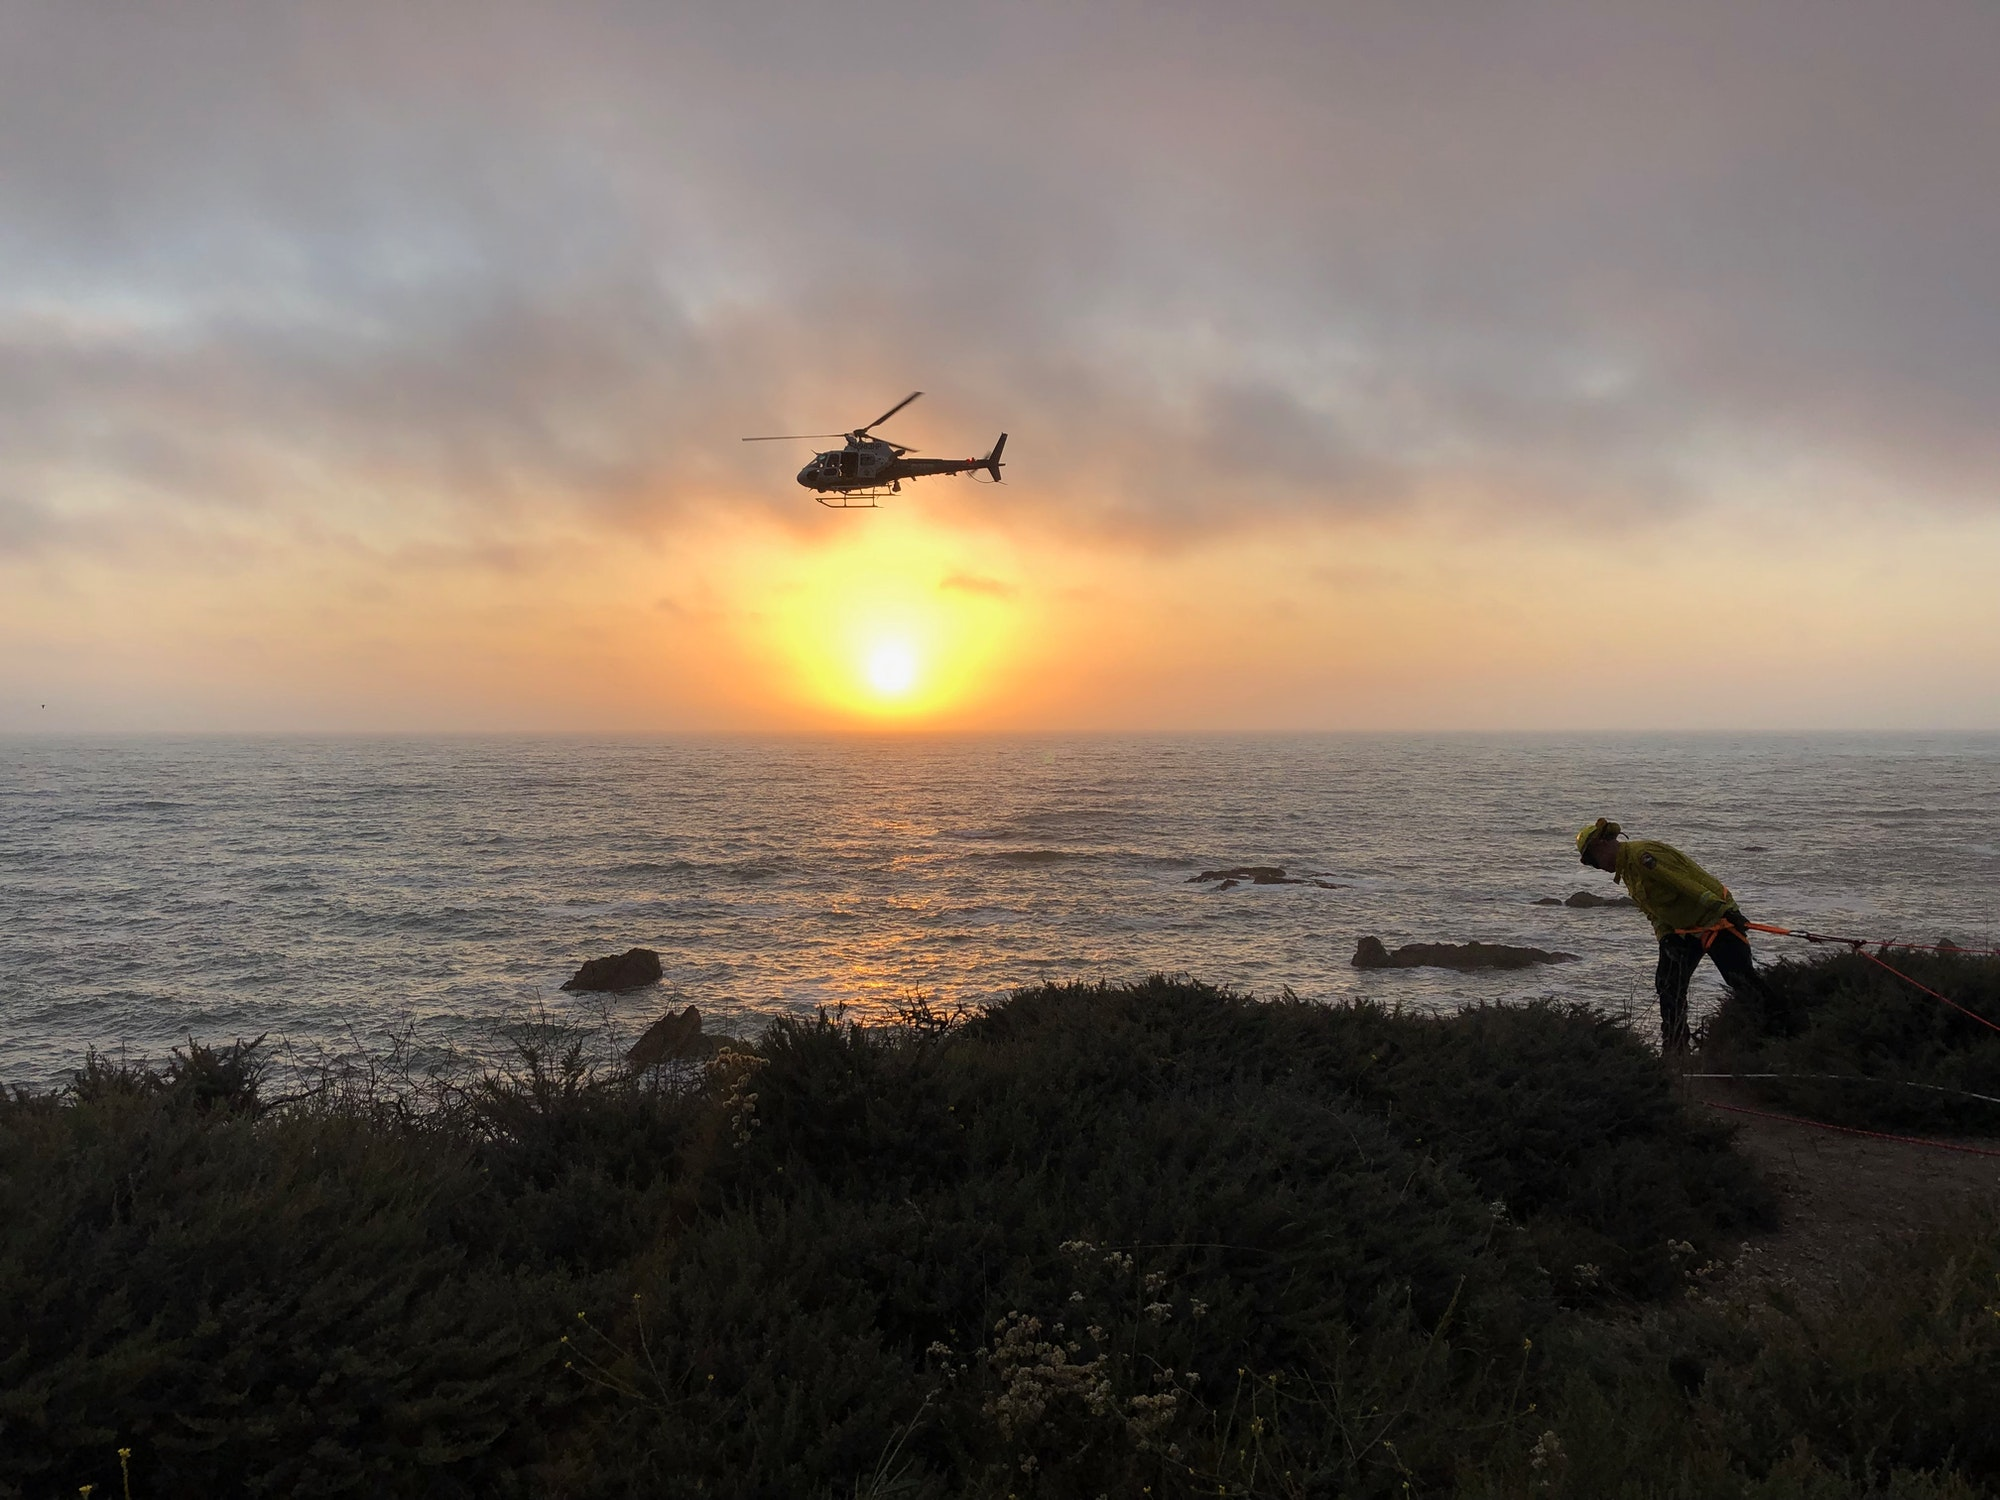 helicopter, fire fighter, cliff, sunset